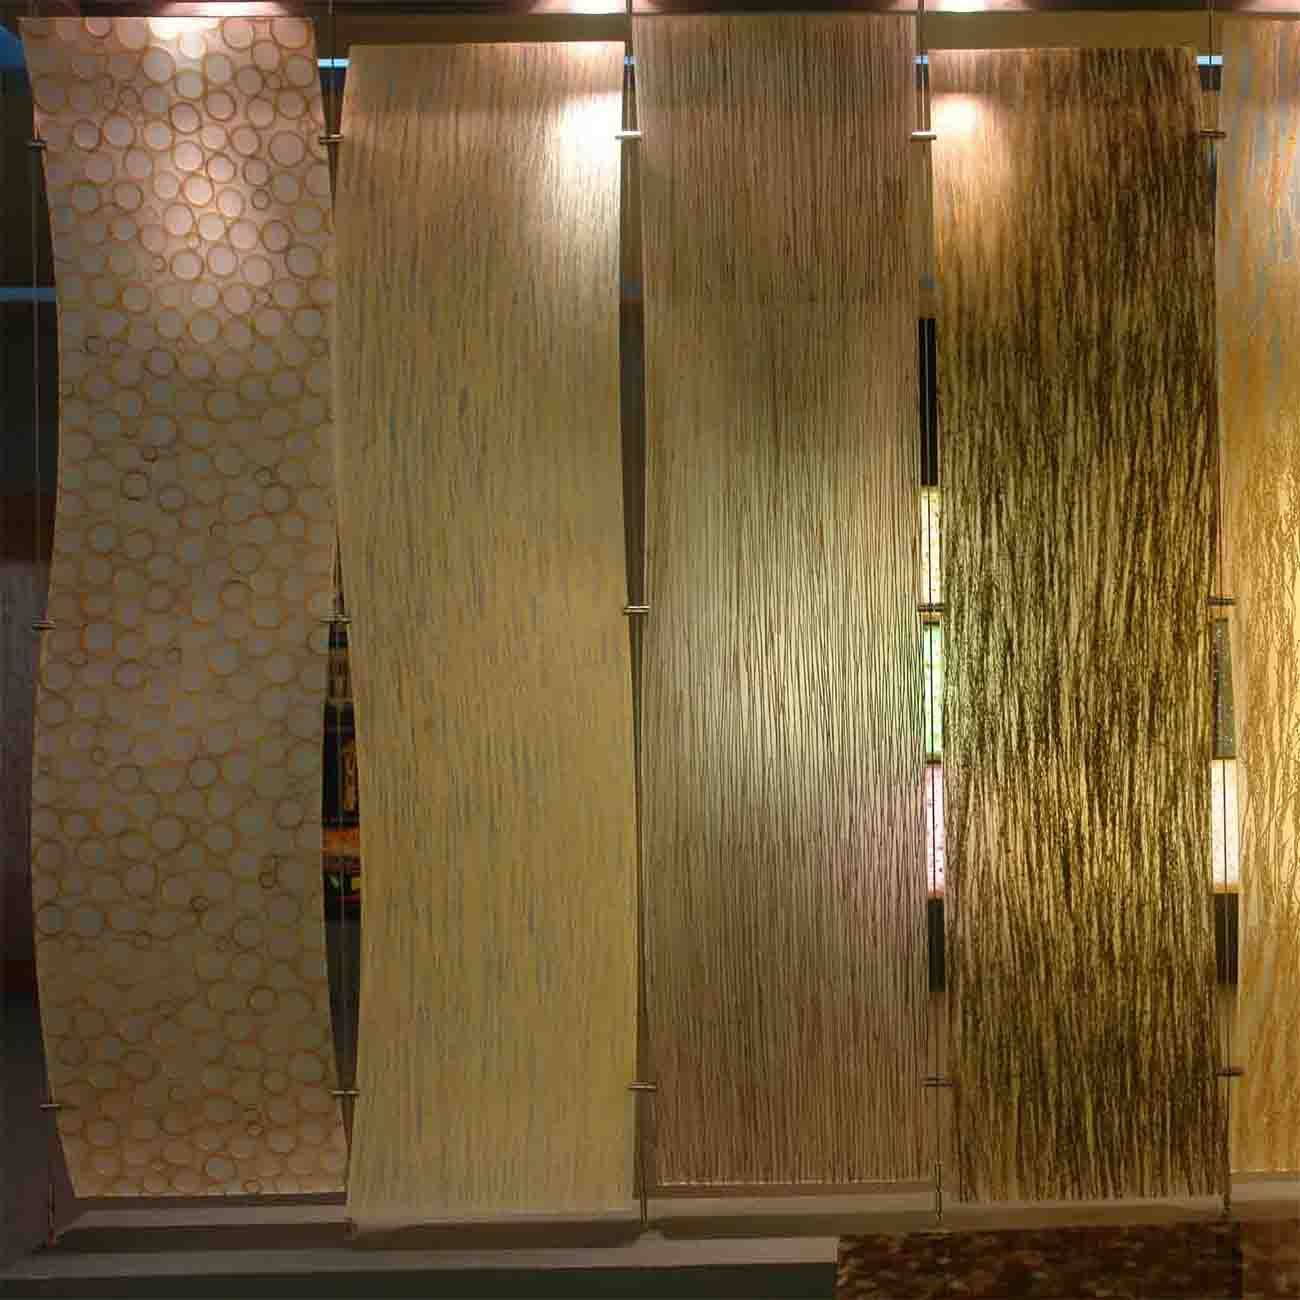 Acrylic wall panels Plastics Pinterest Still in